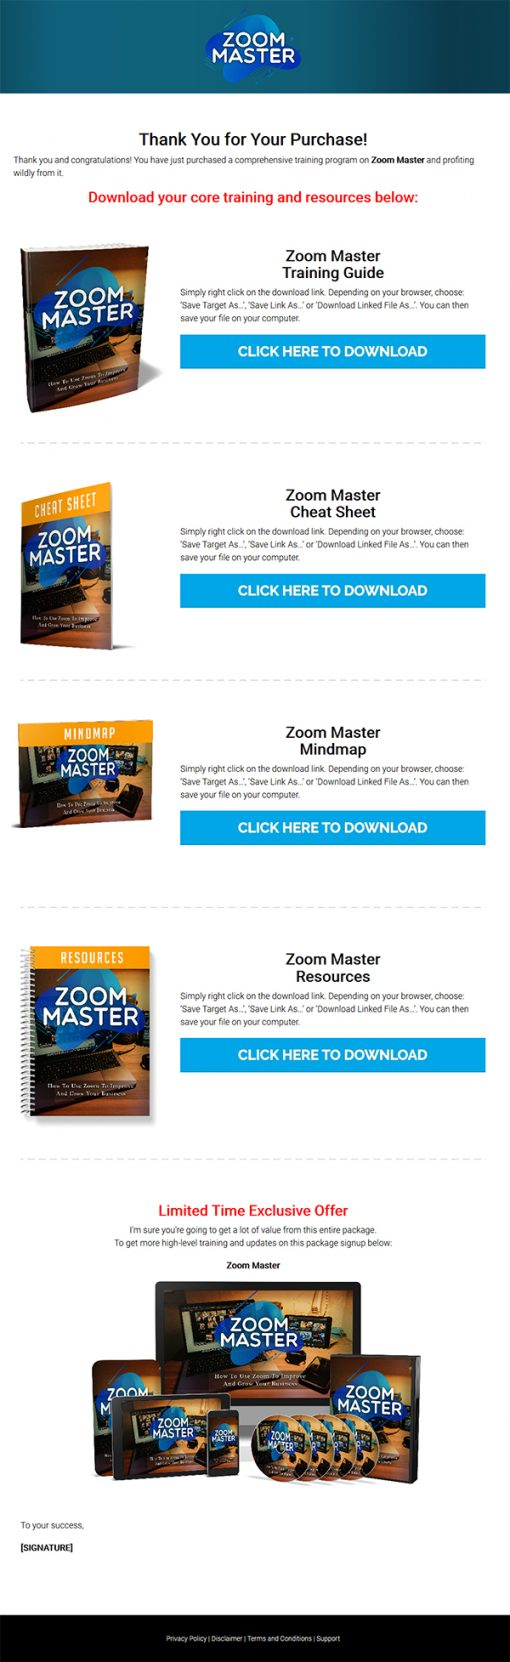 Zoom Master Ebook and Videos MRR